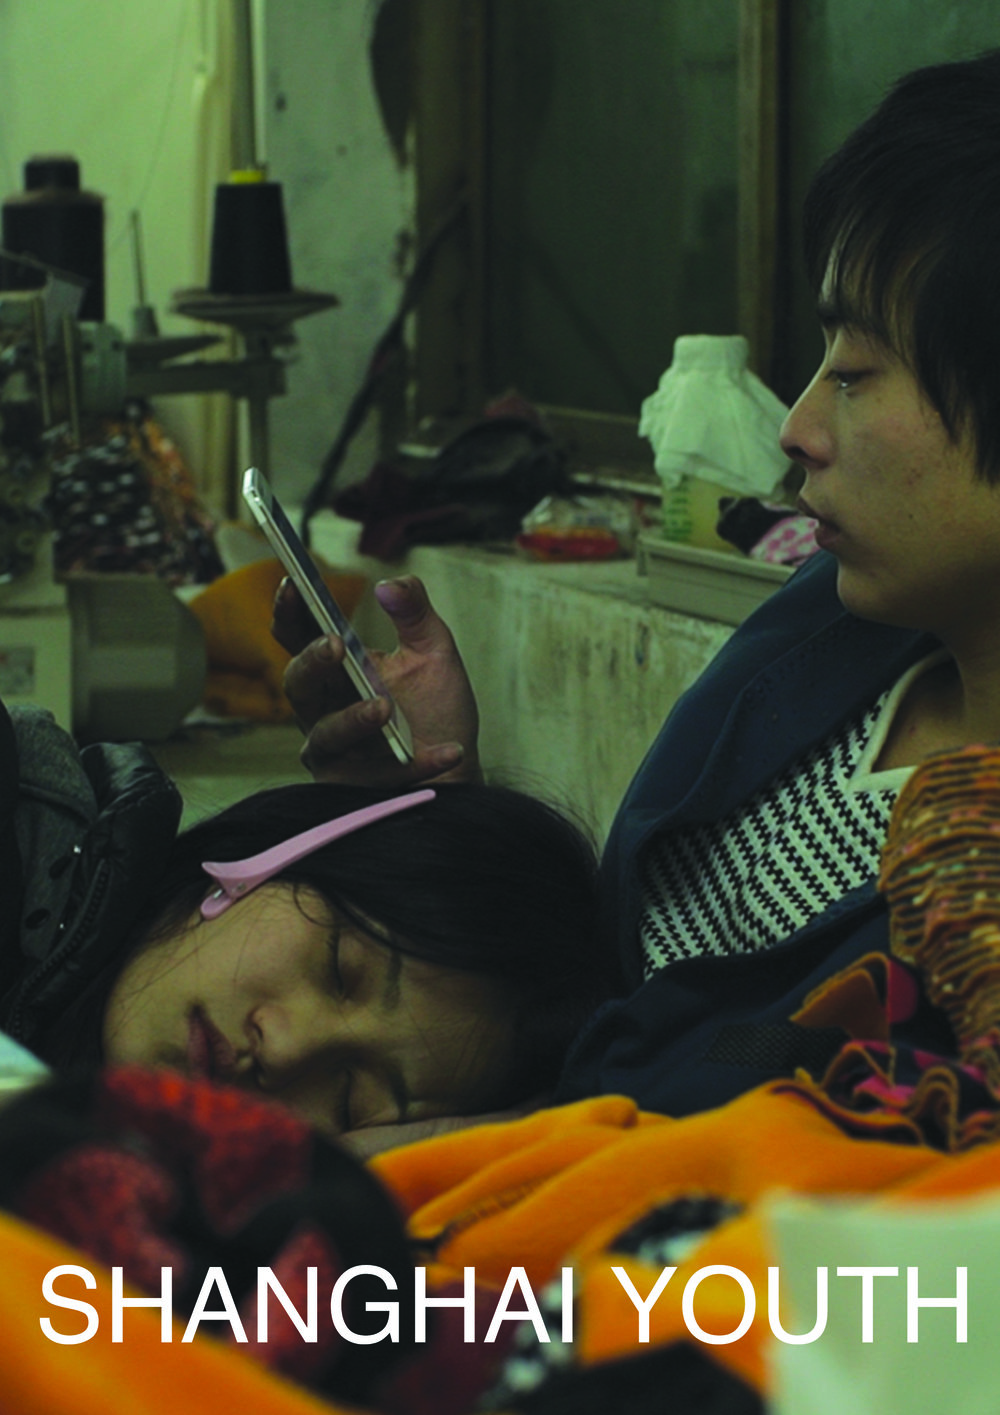 SHANGHAI YOUTH  Documentary feature by Wang Bing, in co-production with Gladys Glover Films (FR), House on Fire (FR), Chinese Shadows (CN), Yisha Production (FR)